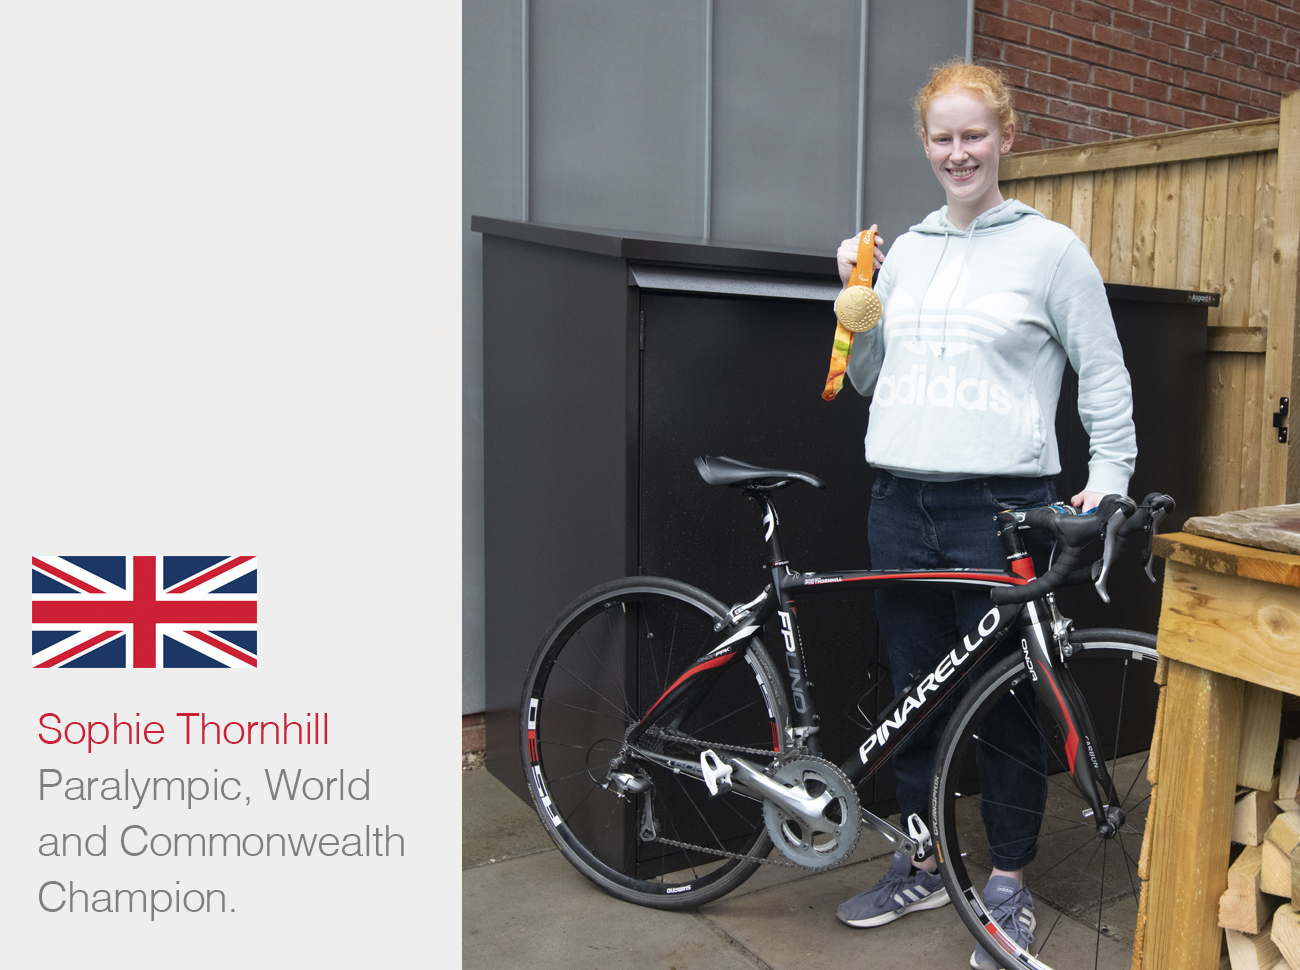 Sophie Thornhill gets an Asgard Bike Storage Shed